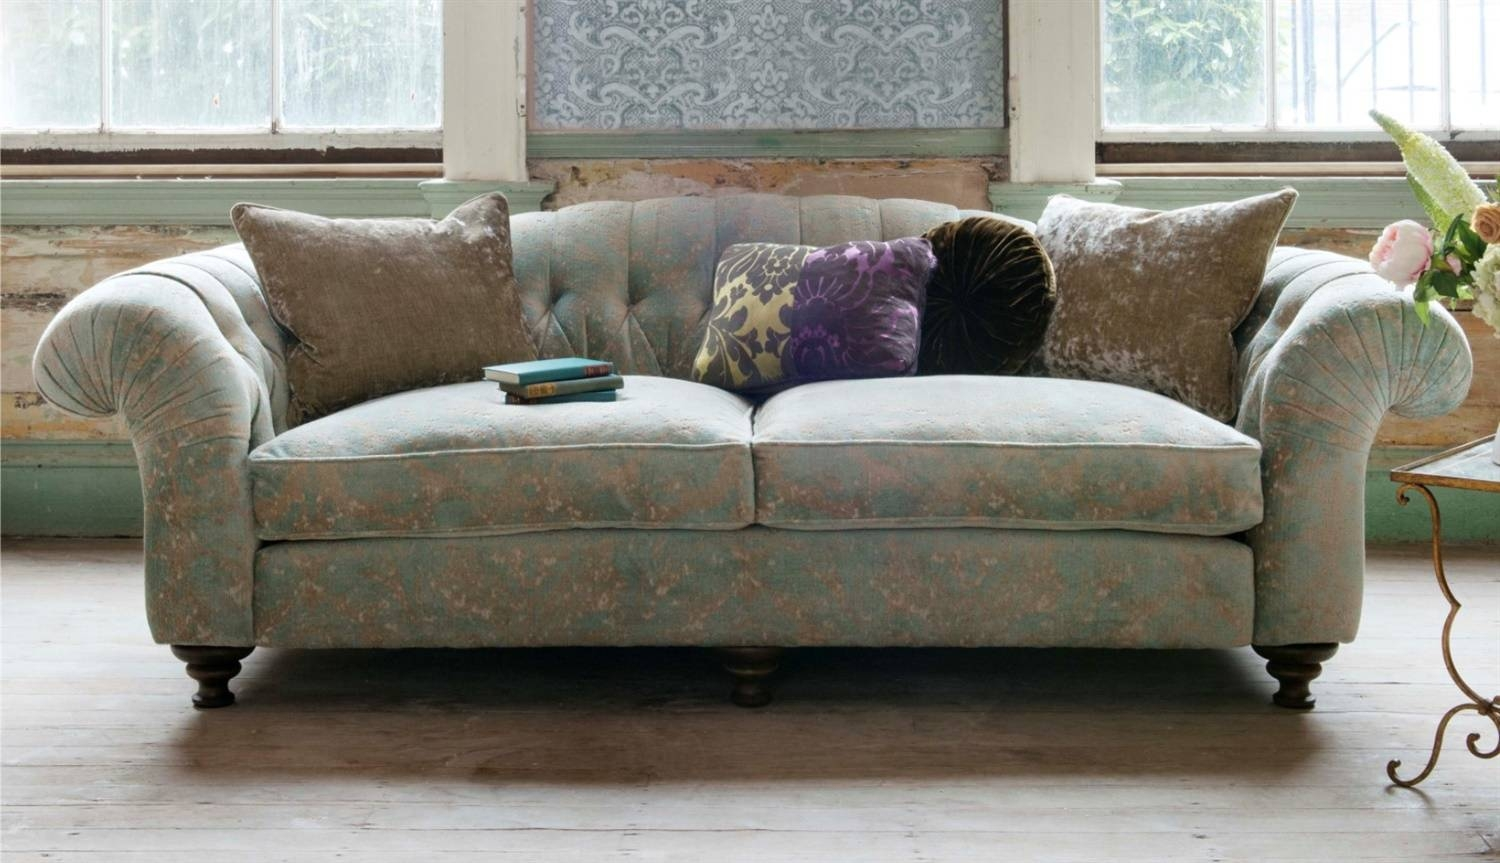 Sofas - Luxury Handcrafted British Fabric Sofas intended for Elegant Fabric Sofas (Image 24 of 30)